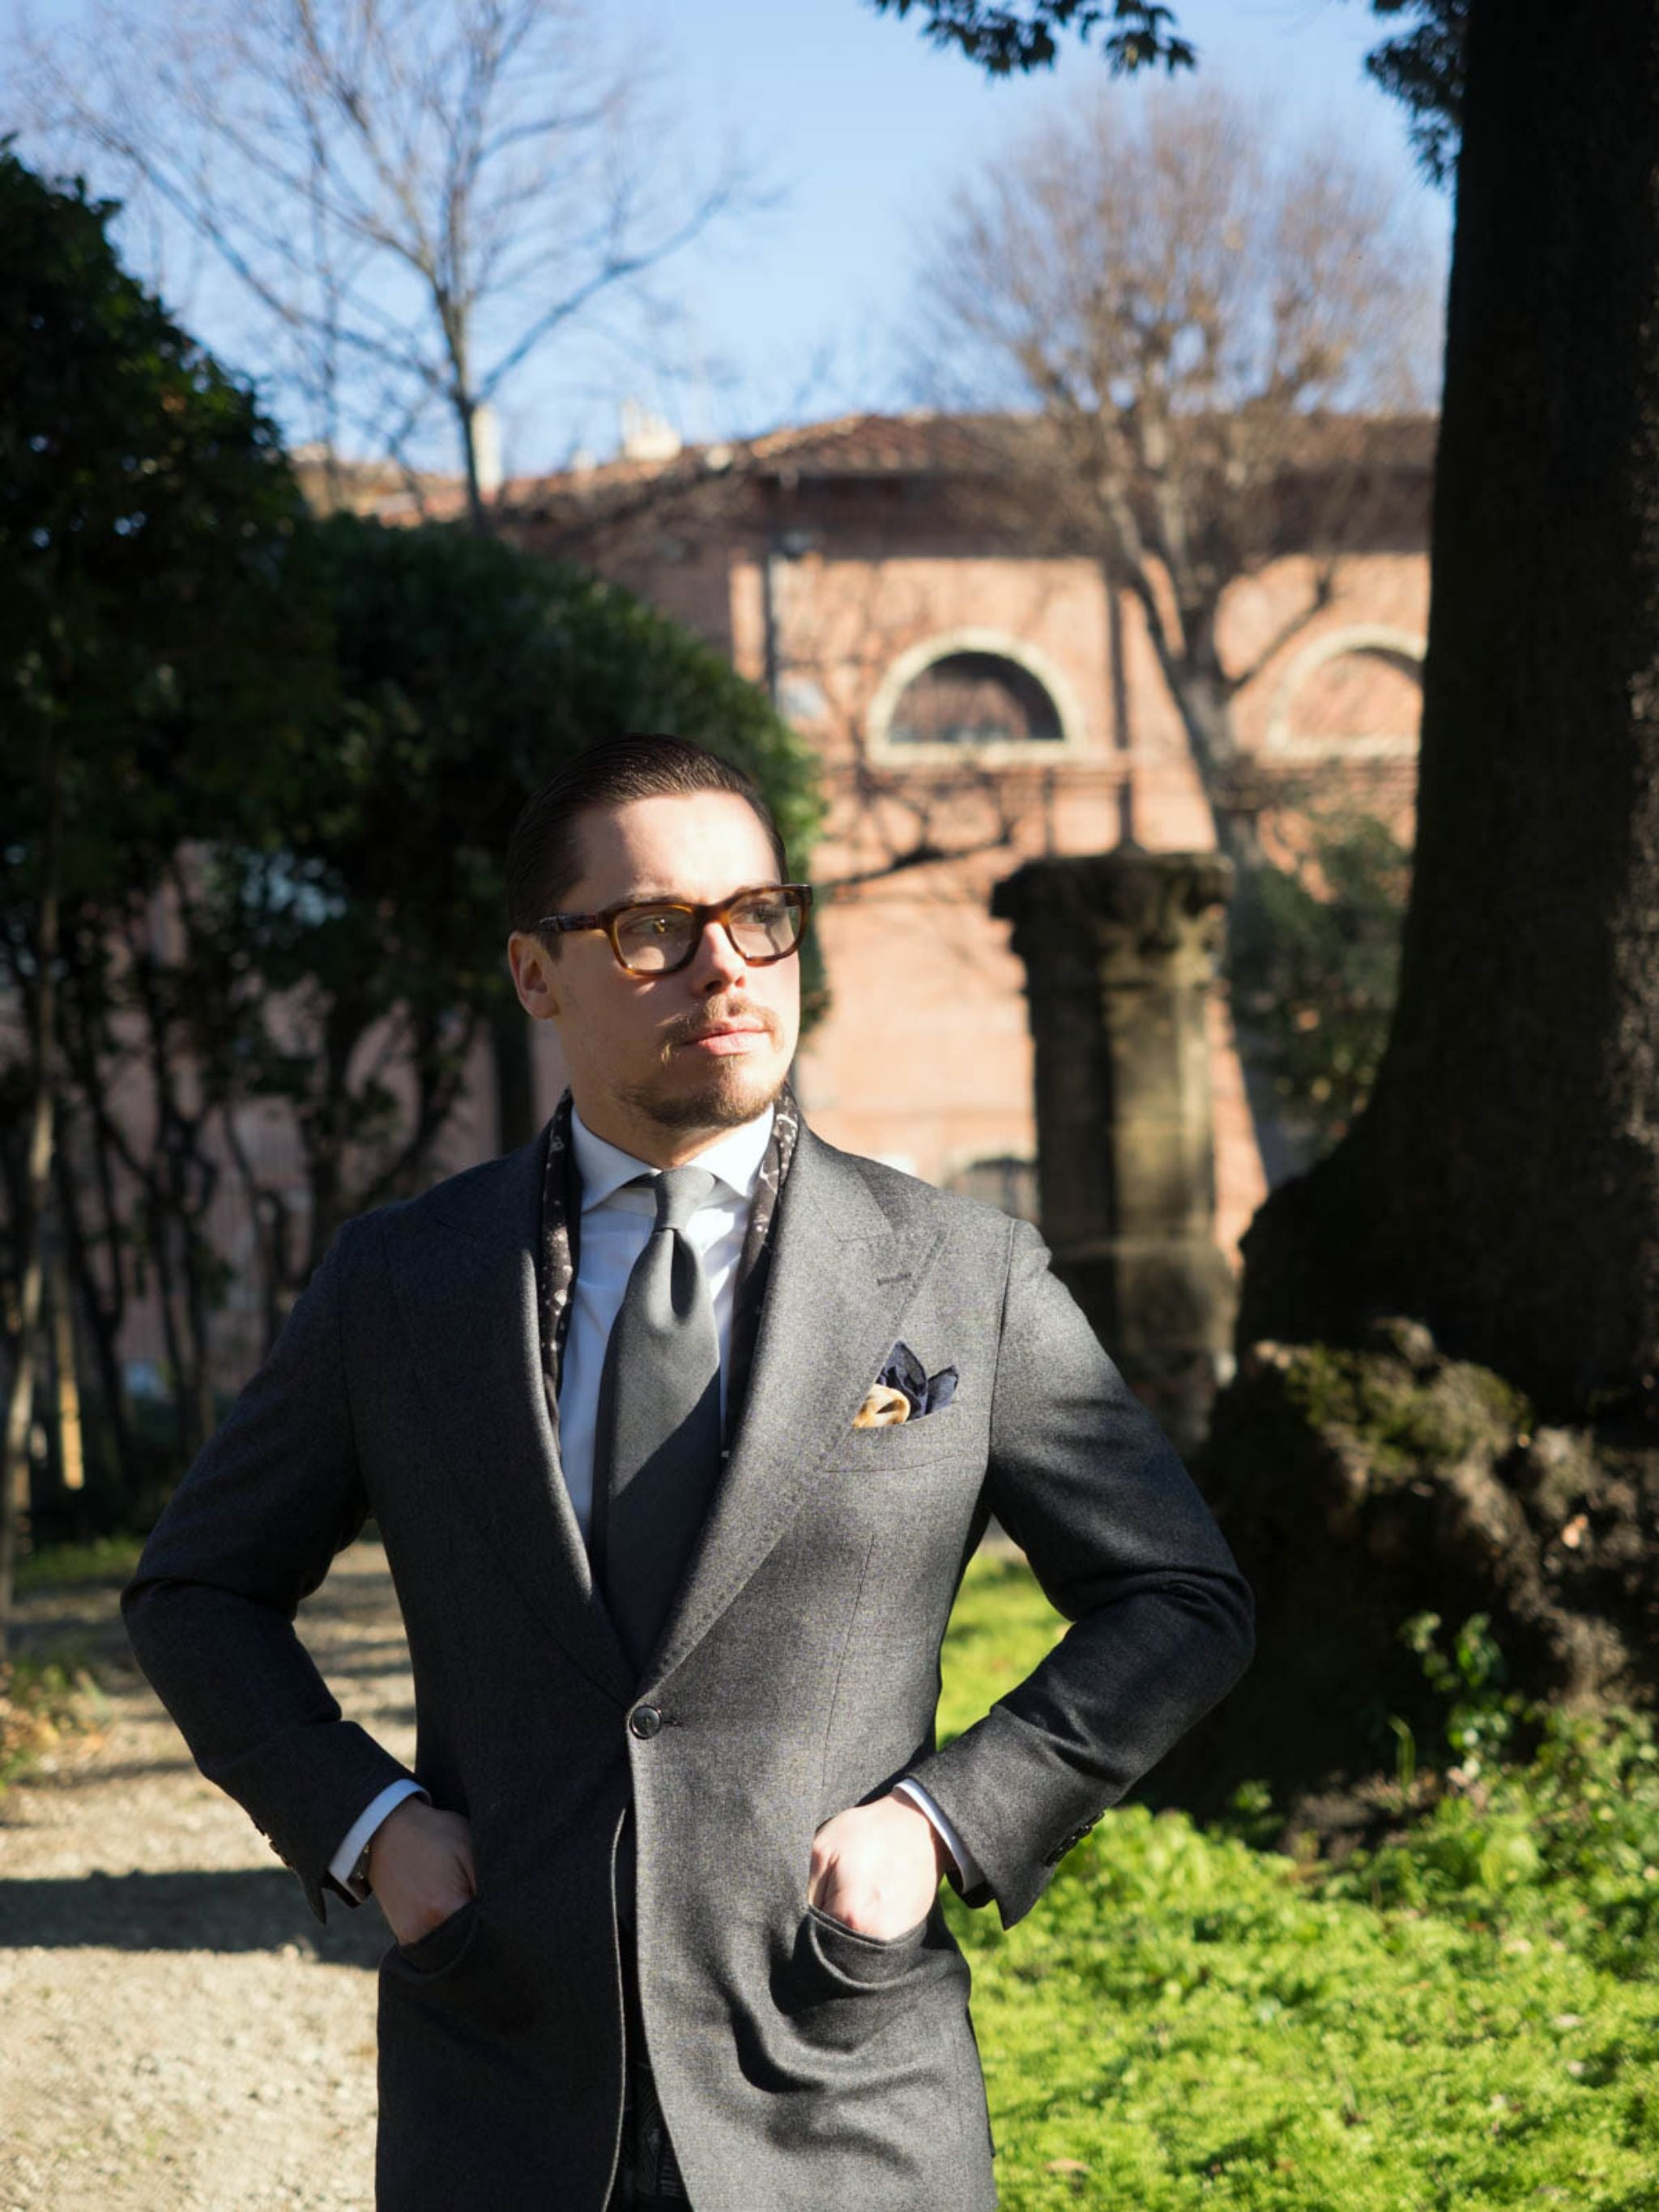 The one button suit - after the second day of Pitti Uomo 91 in the sunny Florence.